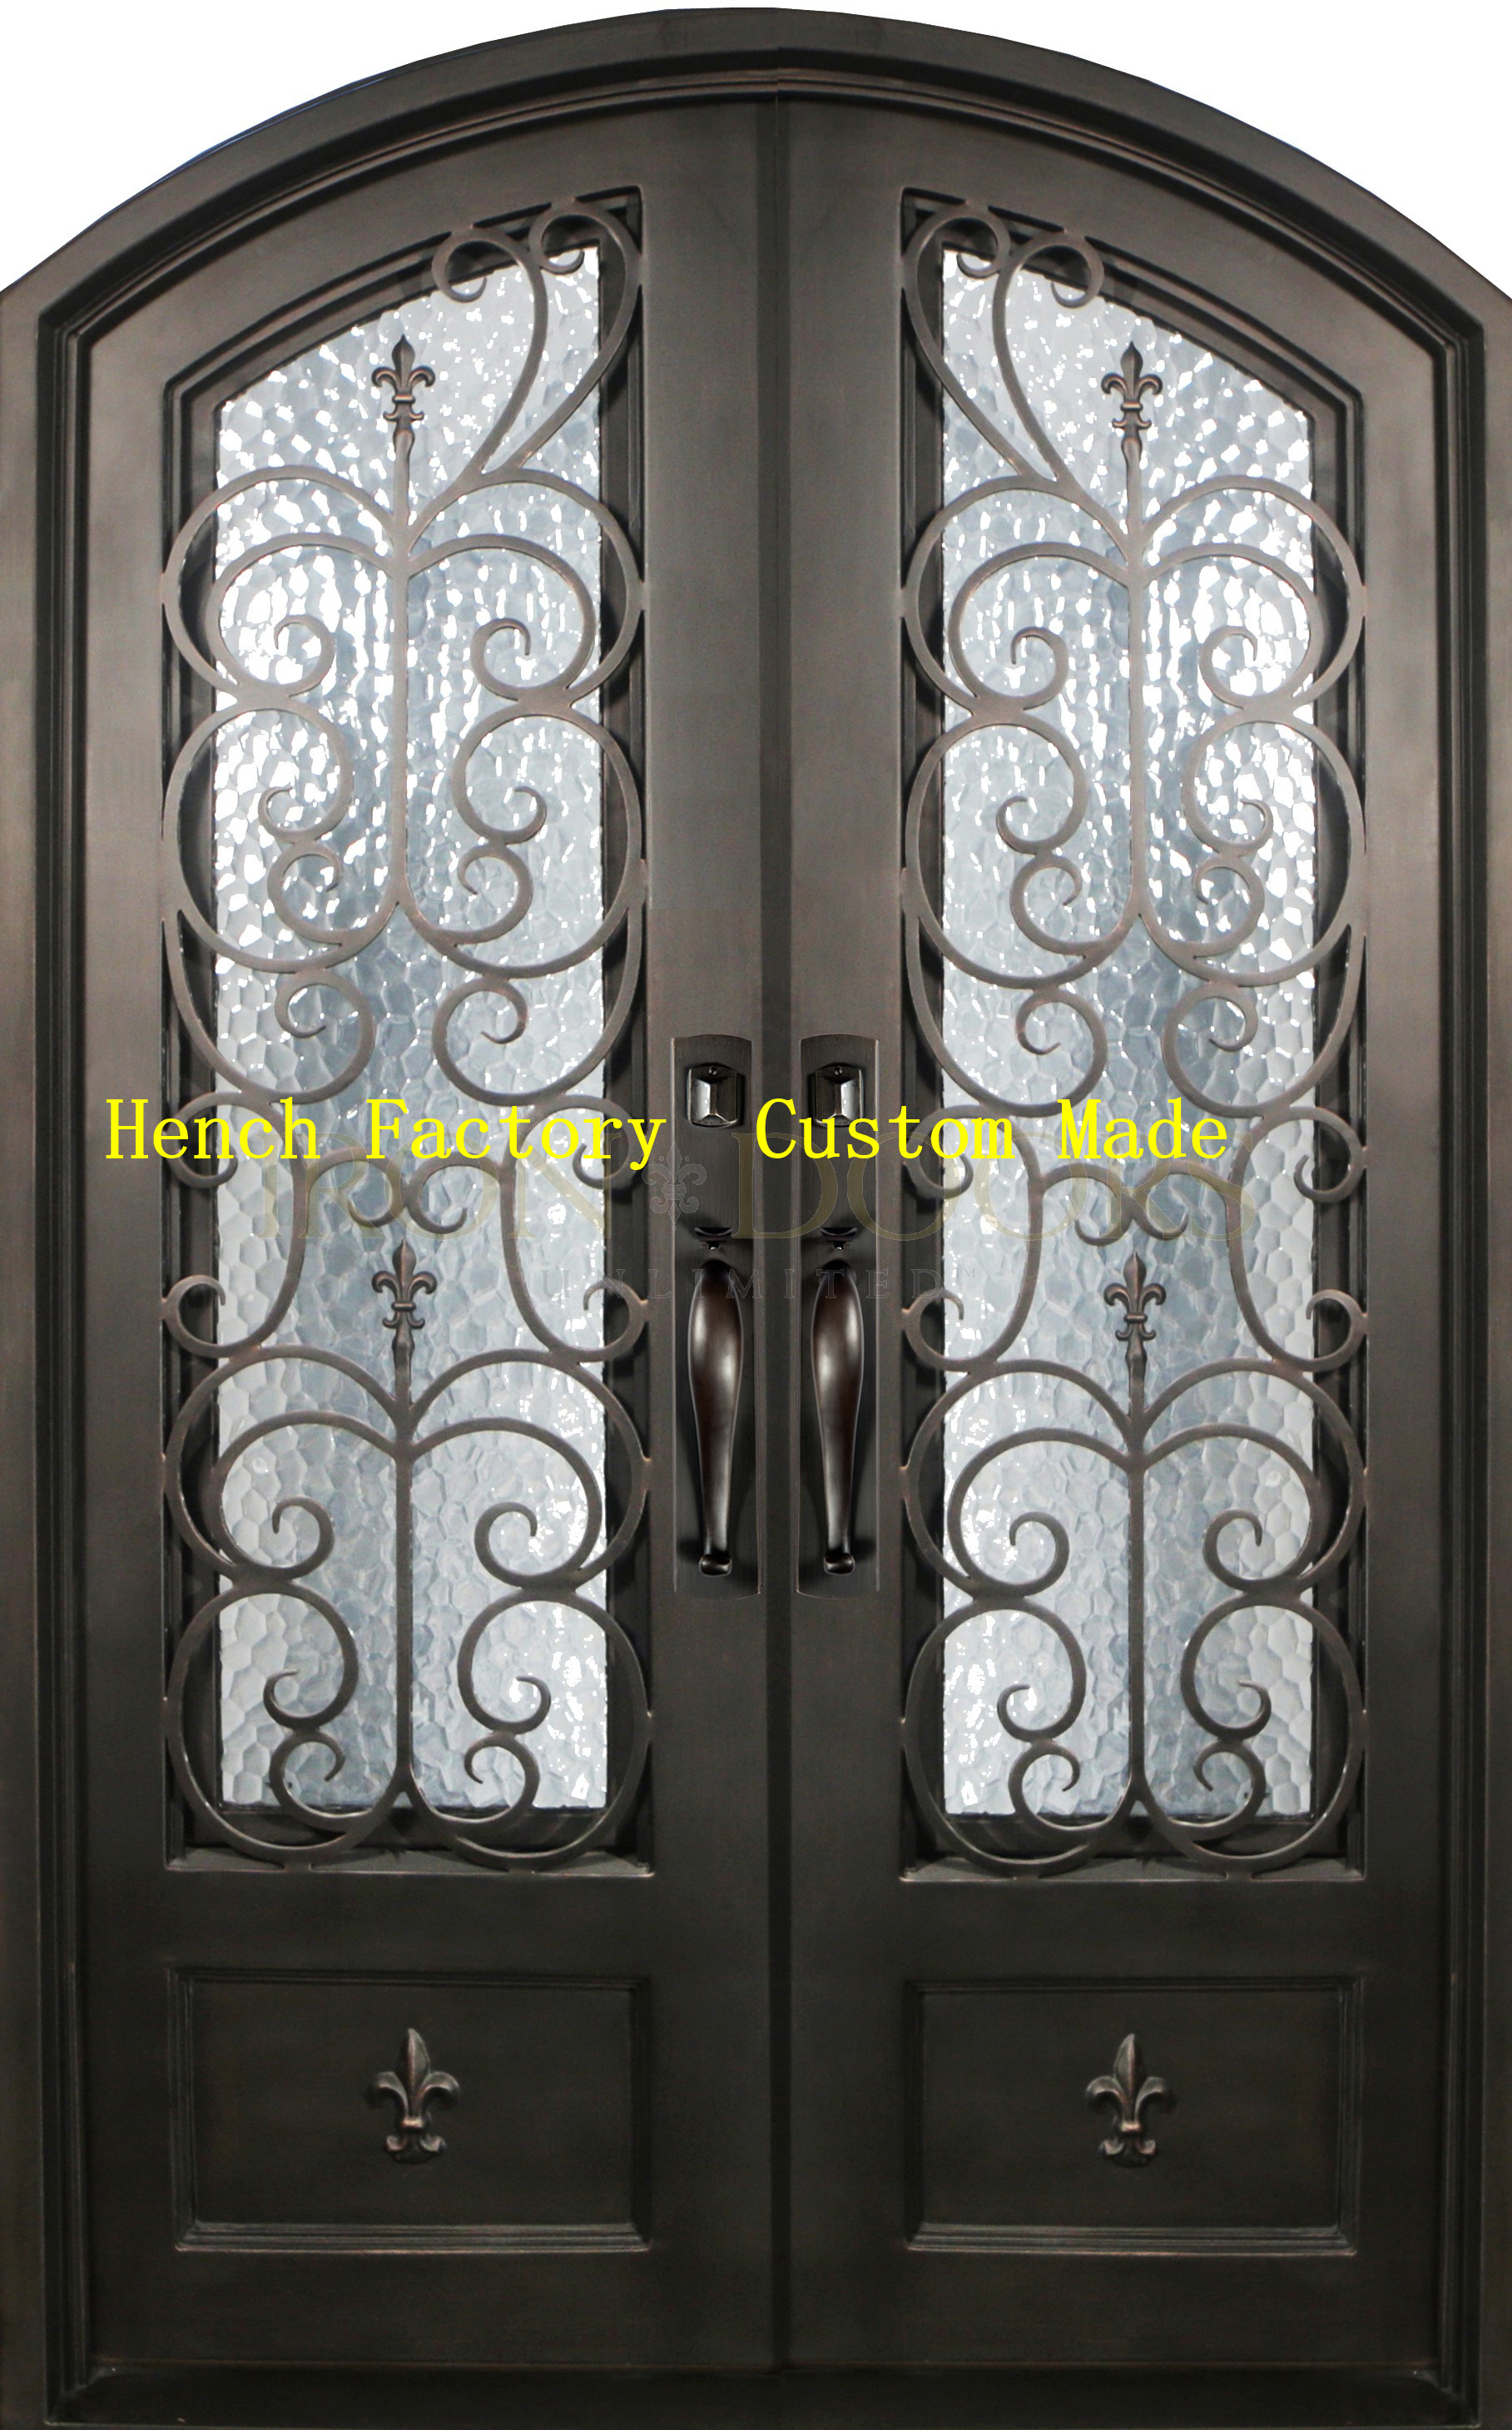 Shanghai Hench Brand China Factory 100% Custom Made Sale Australia Residential Iron Doors